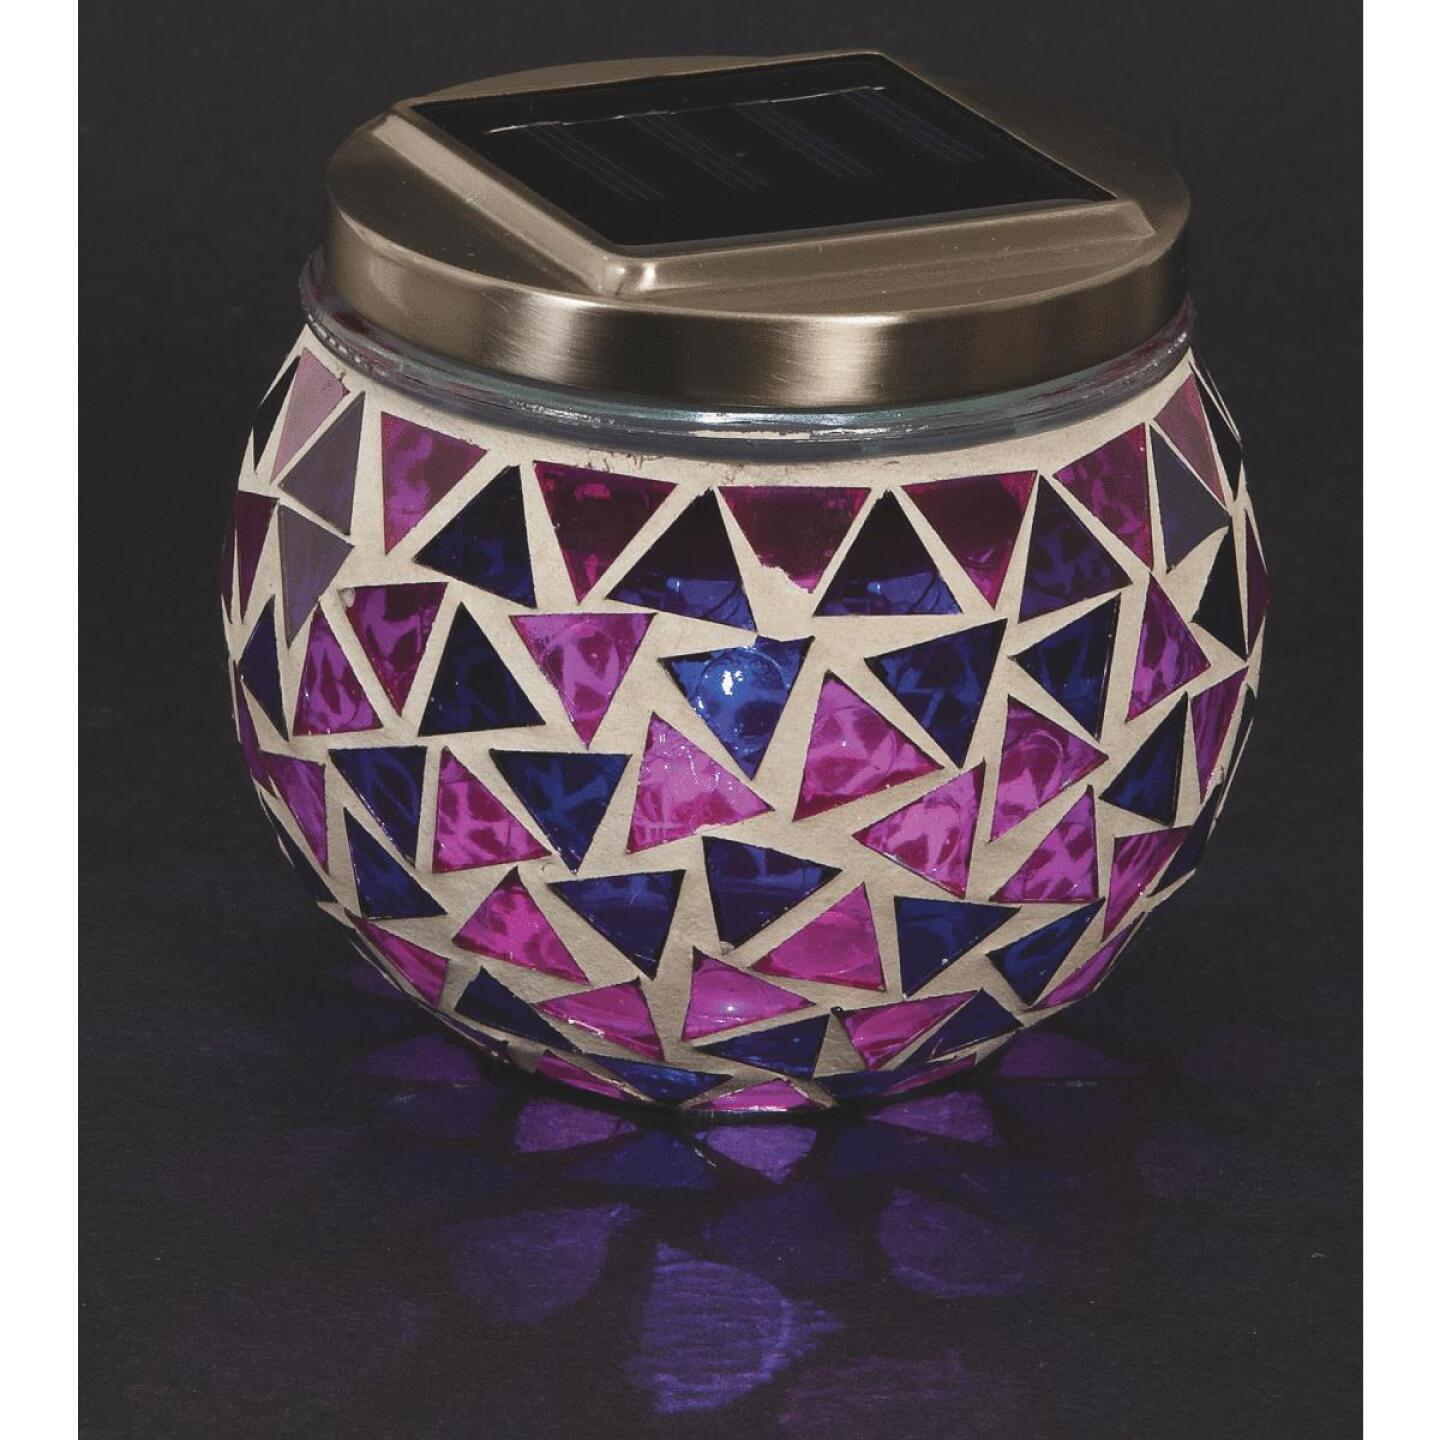 Outdoor Expressions 3.5 In. H. x 3.5 In. Dia. Blue or Purple Tile Tabletop Solar Patio Light Image 6